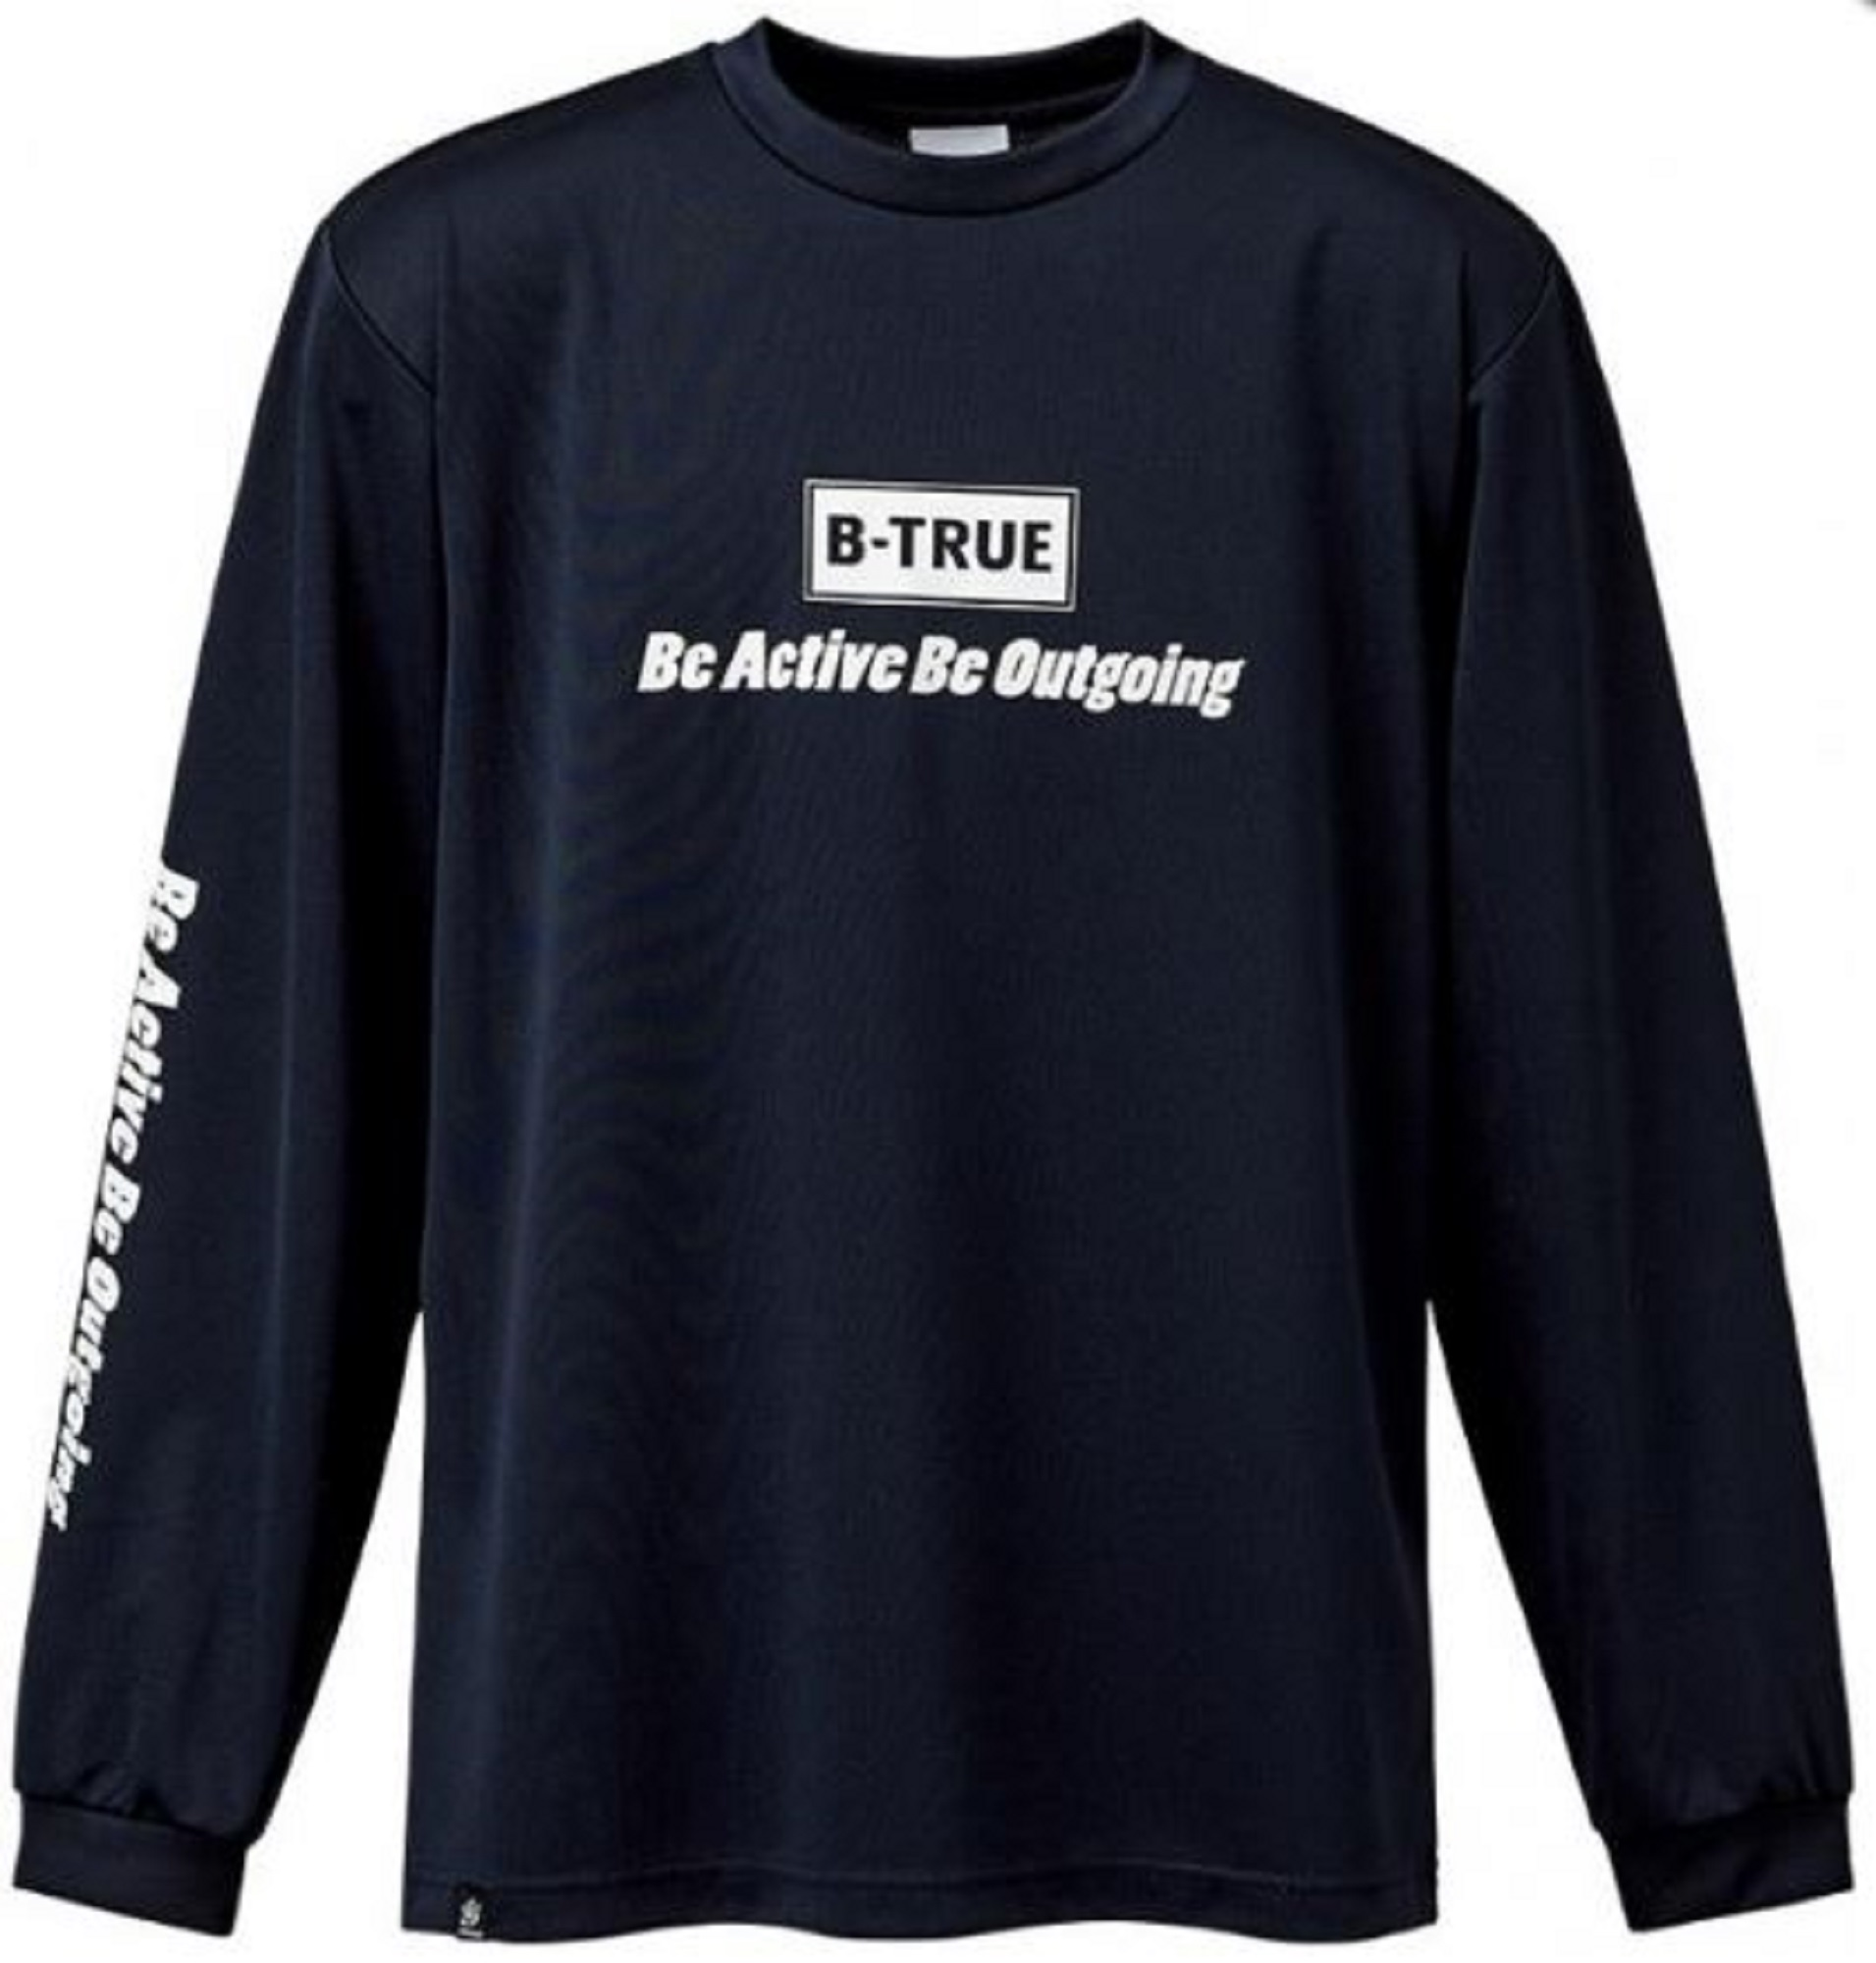 Evergreen T-Shirt Dry Fit Long Sleeve B-True B Type Size L Navy (0211)